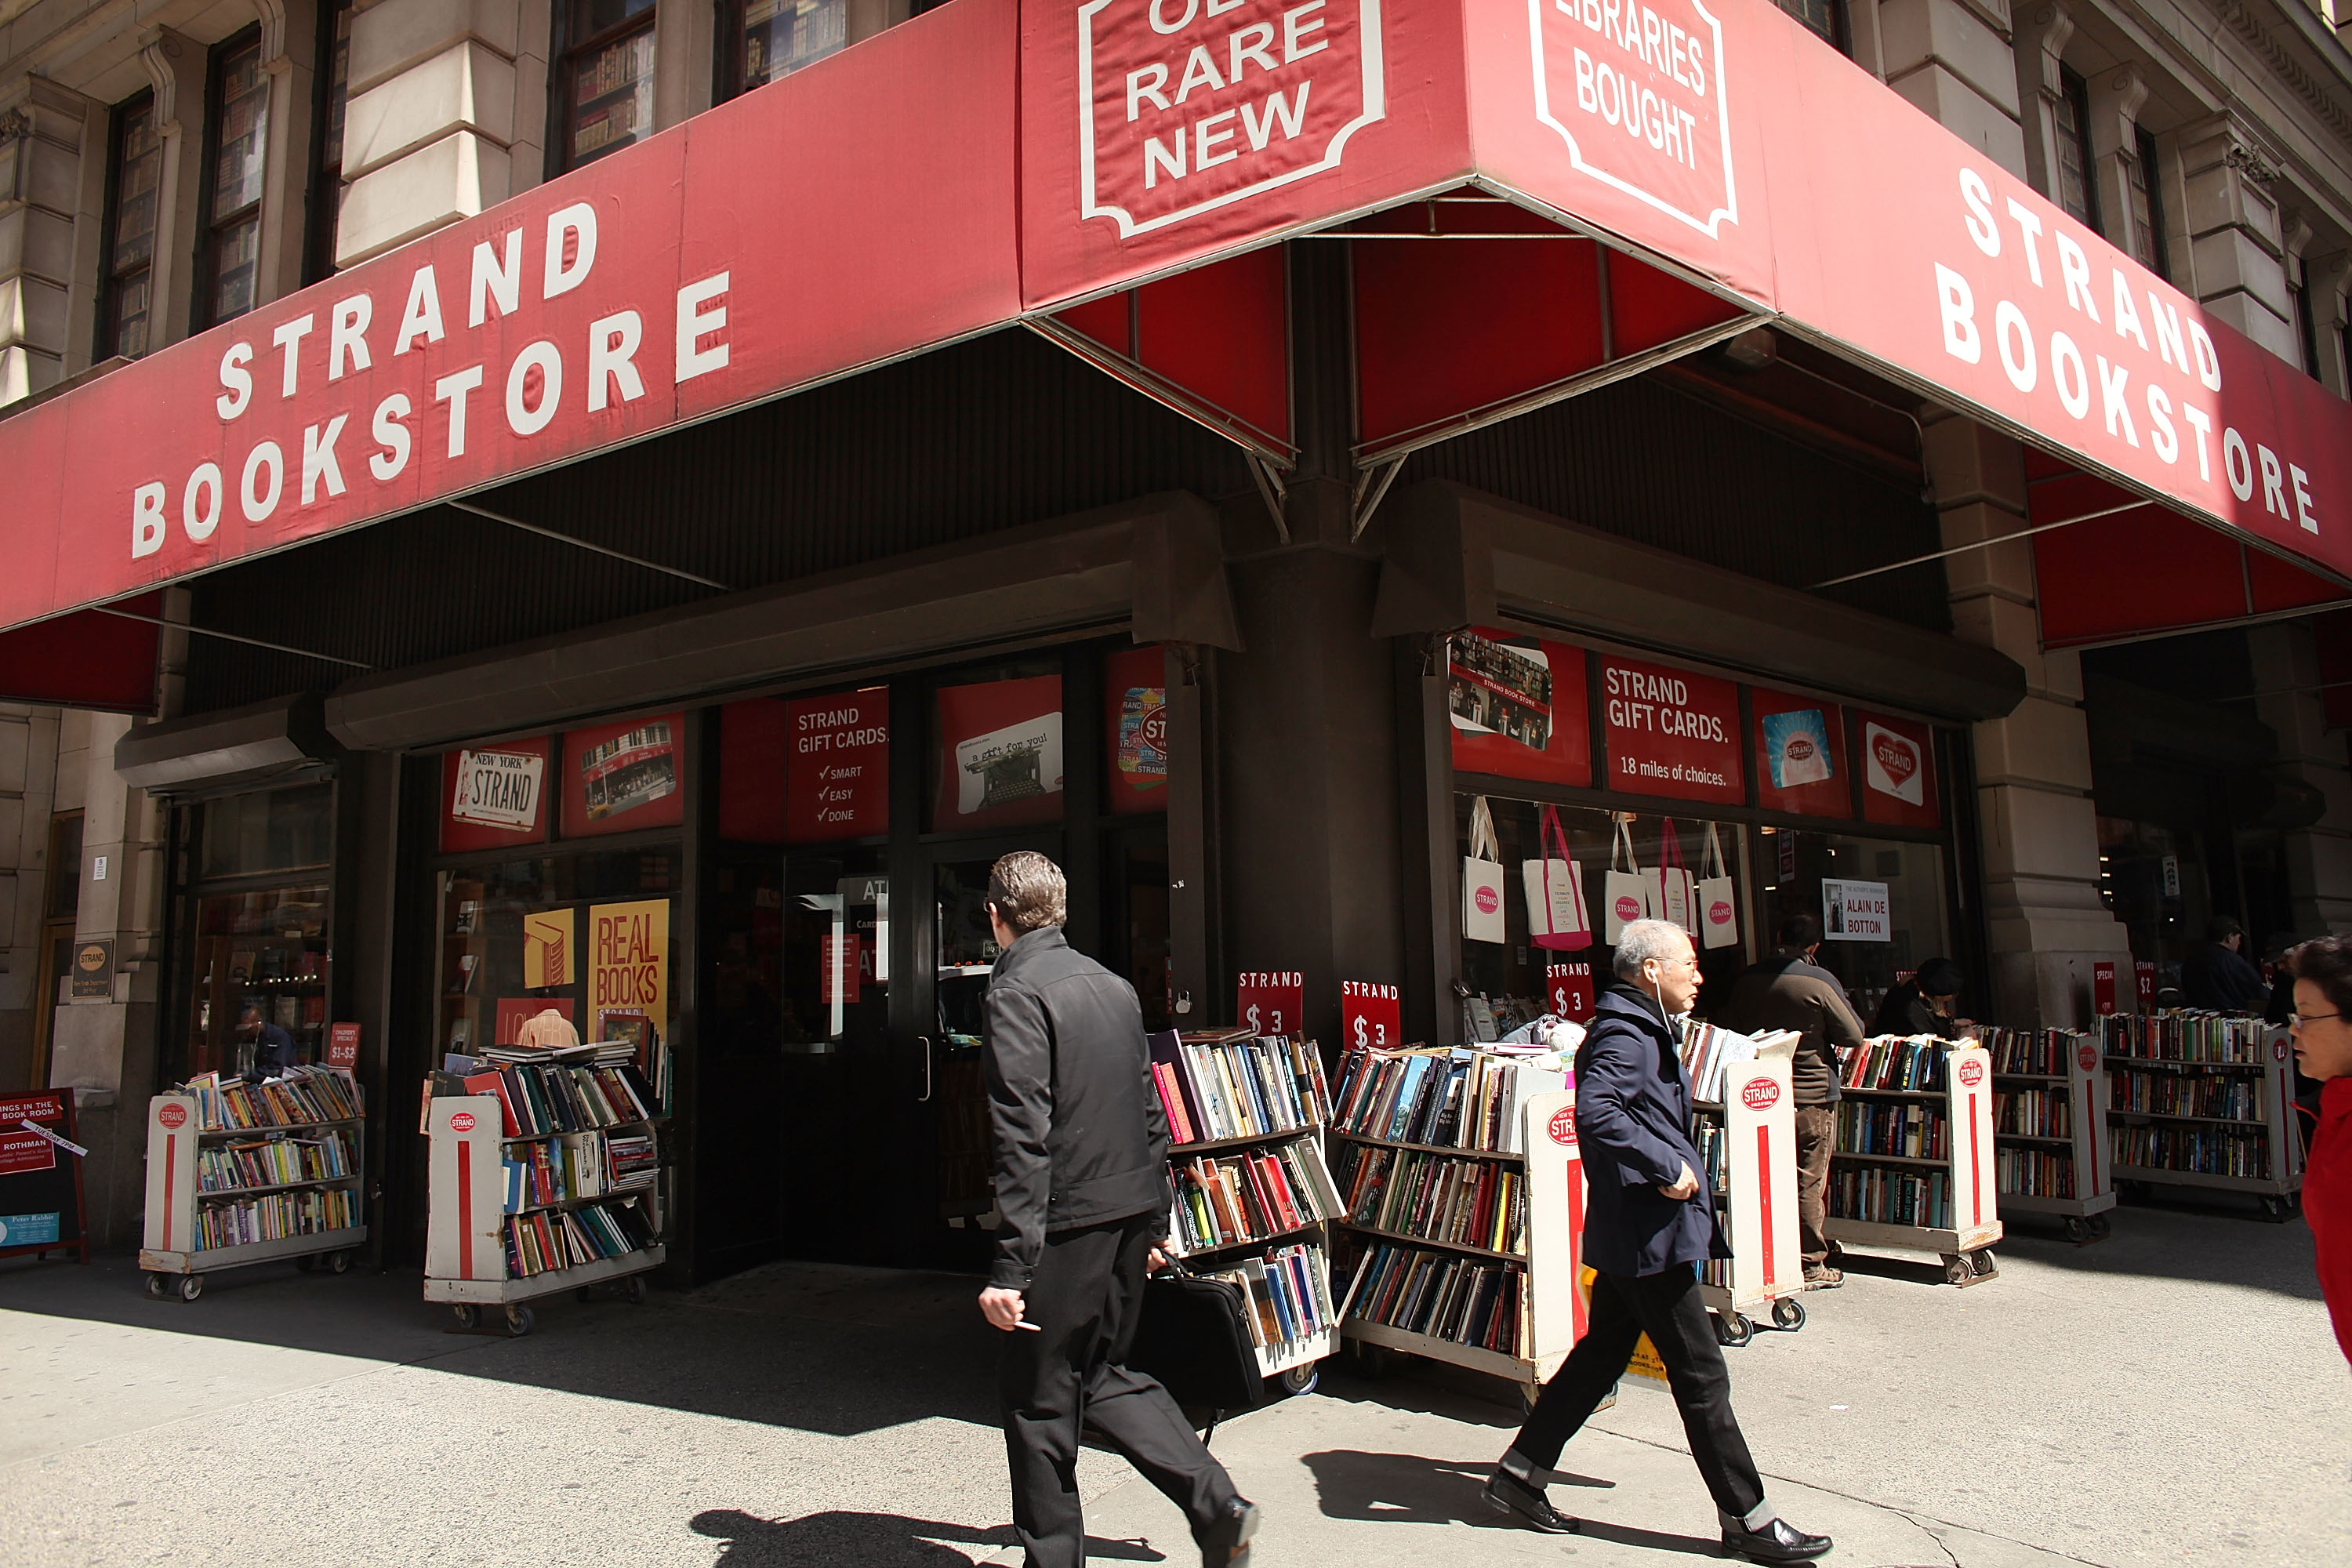 Strand Bookstore, six other Broadway buildings are now NYC landmarks